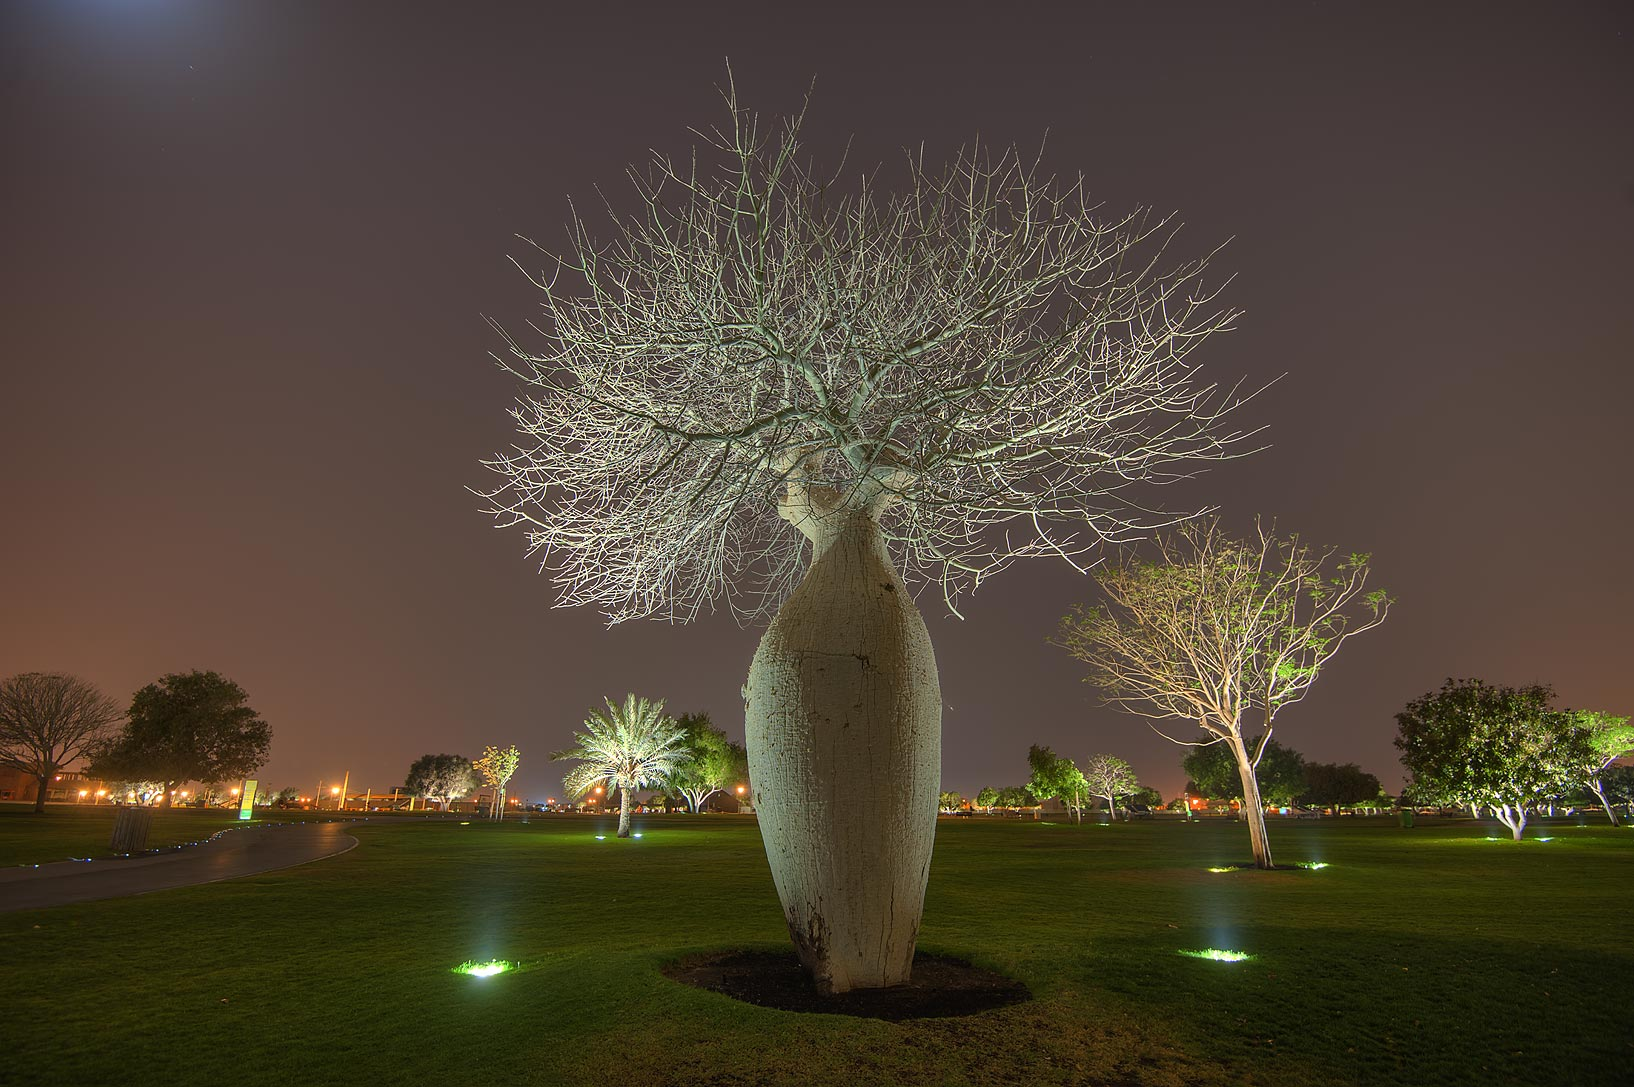 Silk floss tree (Chorisia speciosa, Ceiba...family) in Aspire Park. Doha, Qatar